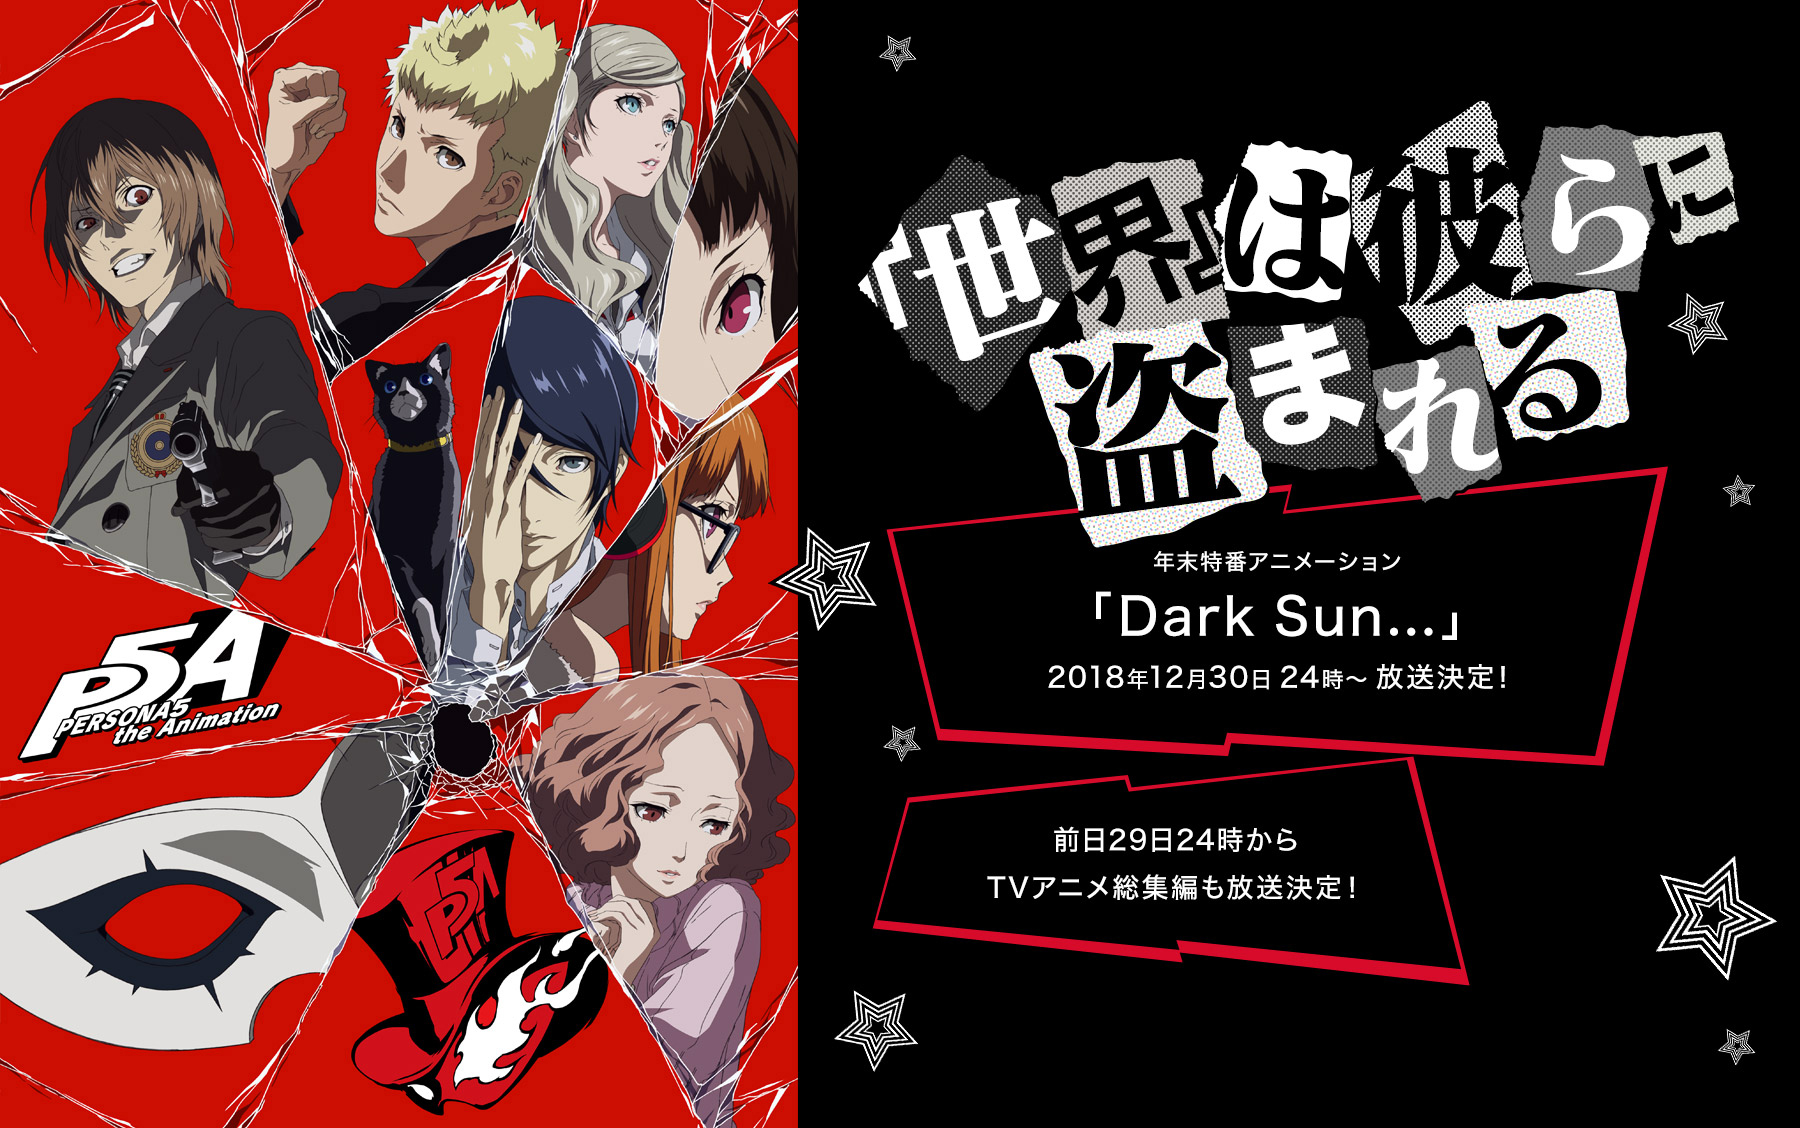 persona 5 the animation dark sun to air on december 30 p5 spoilers